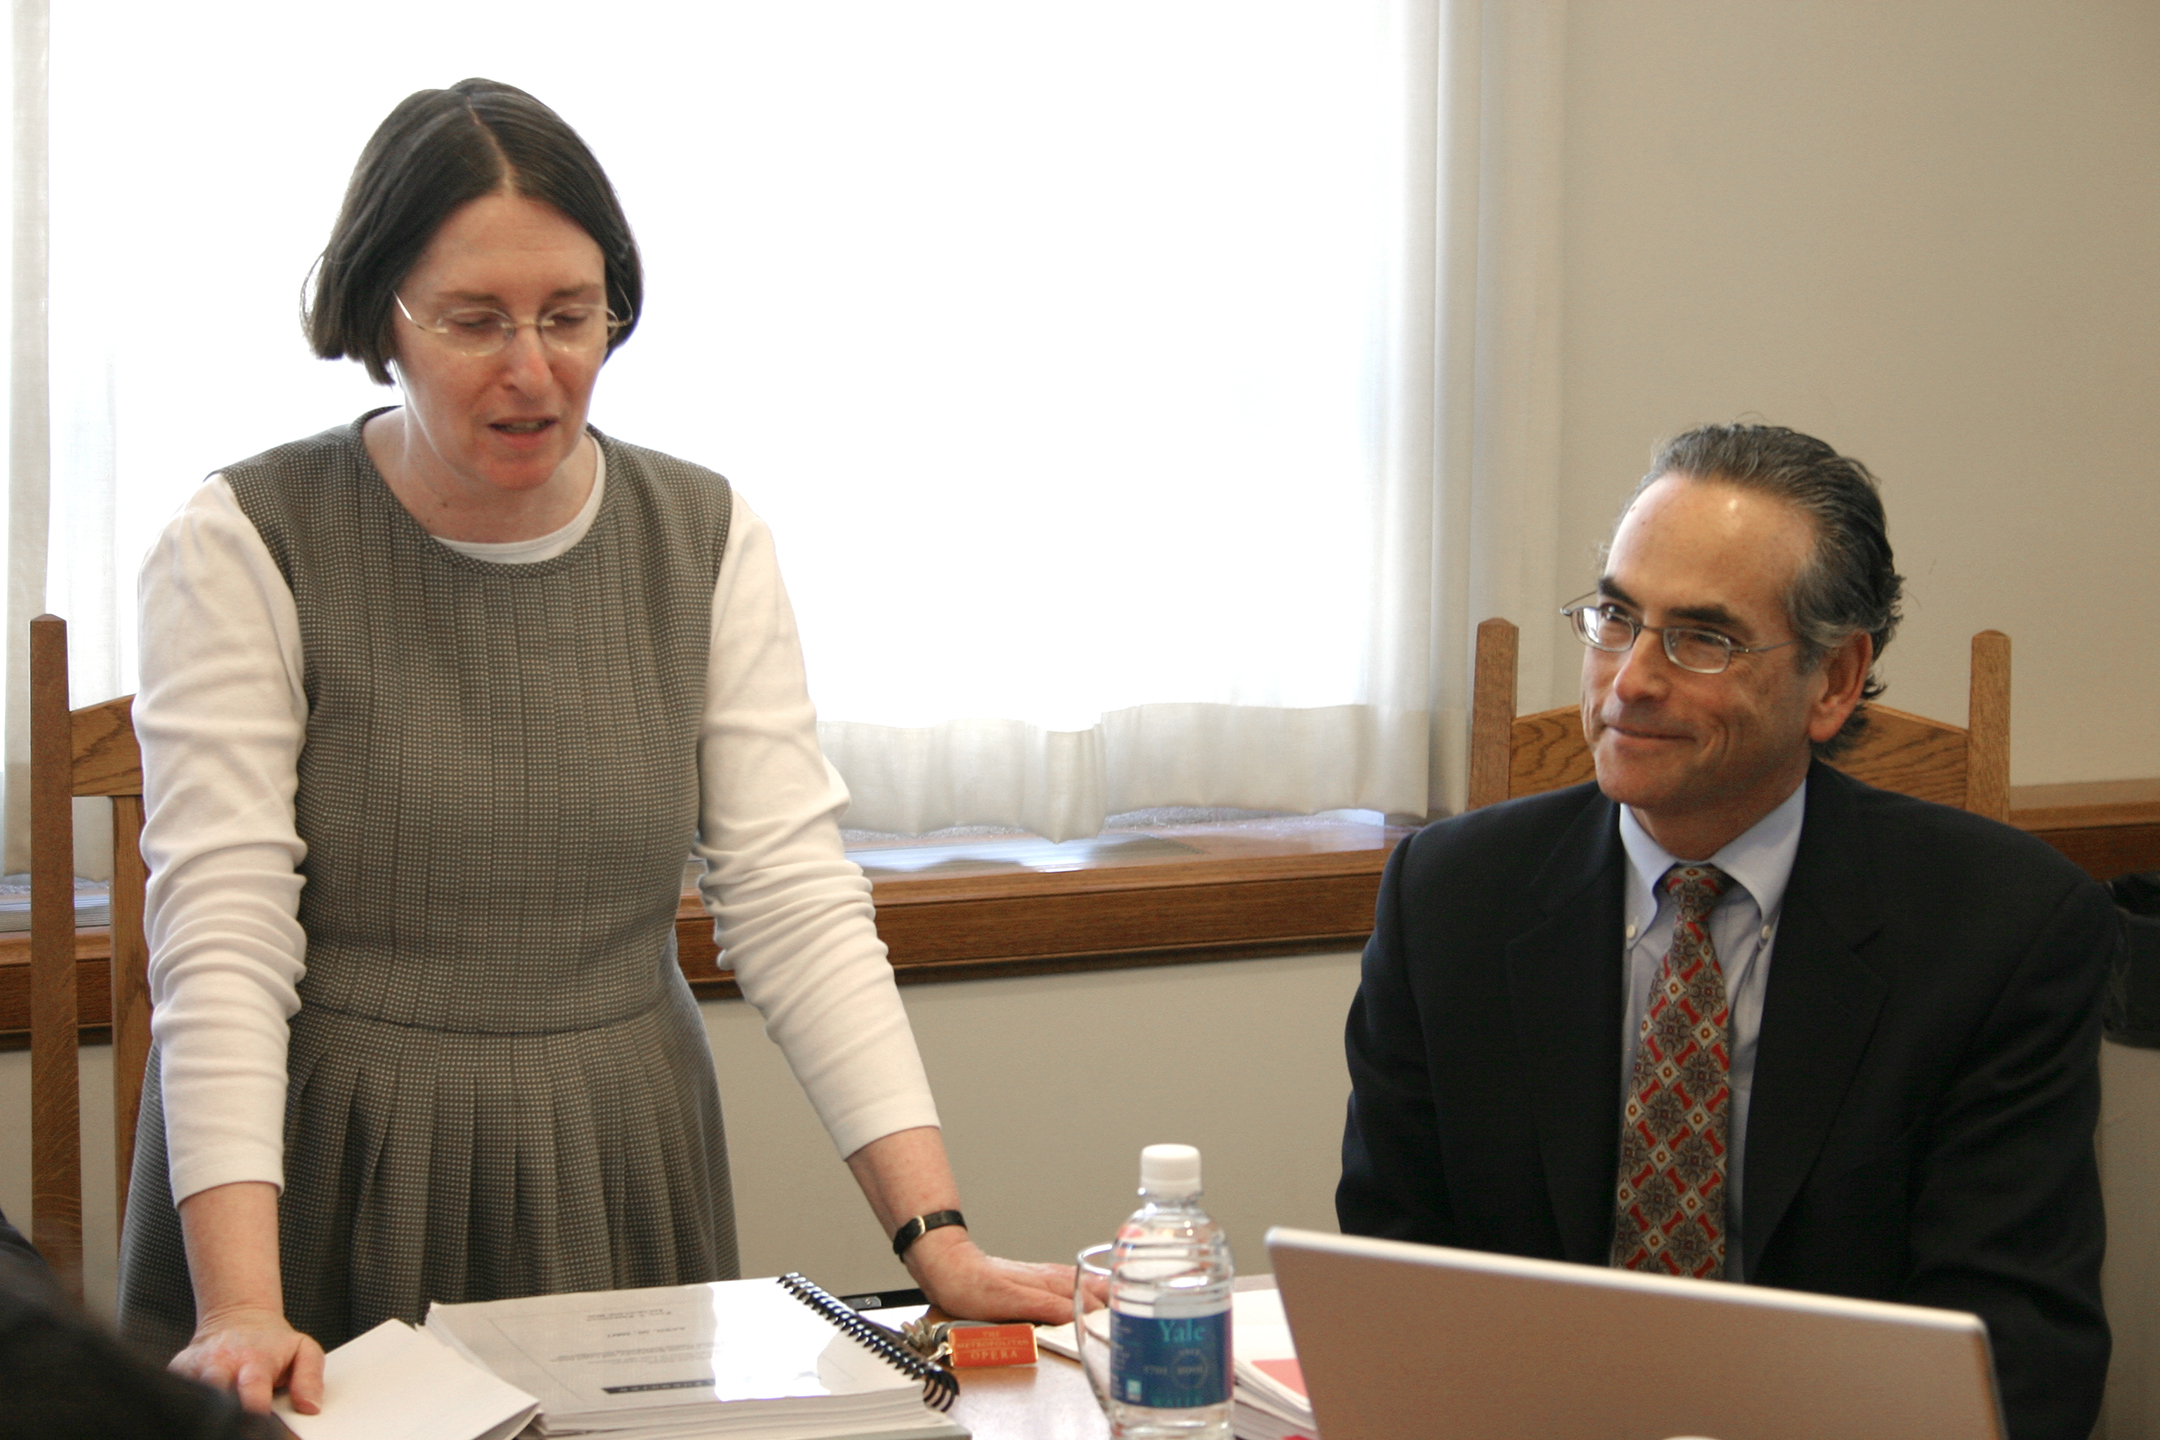 YLS Prof. and Center Dir. Roberta Romano '80 and Paul T. Friedman '80